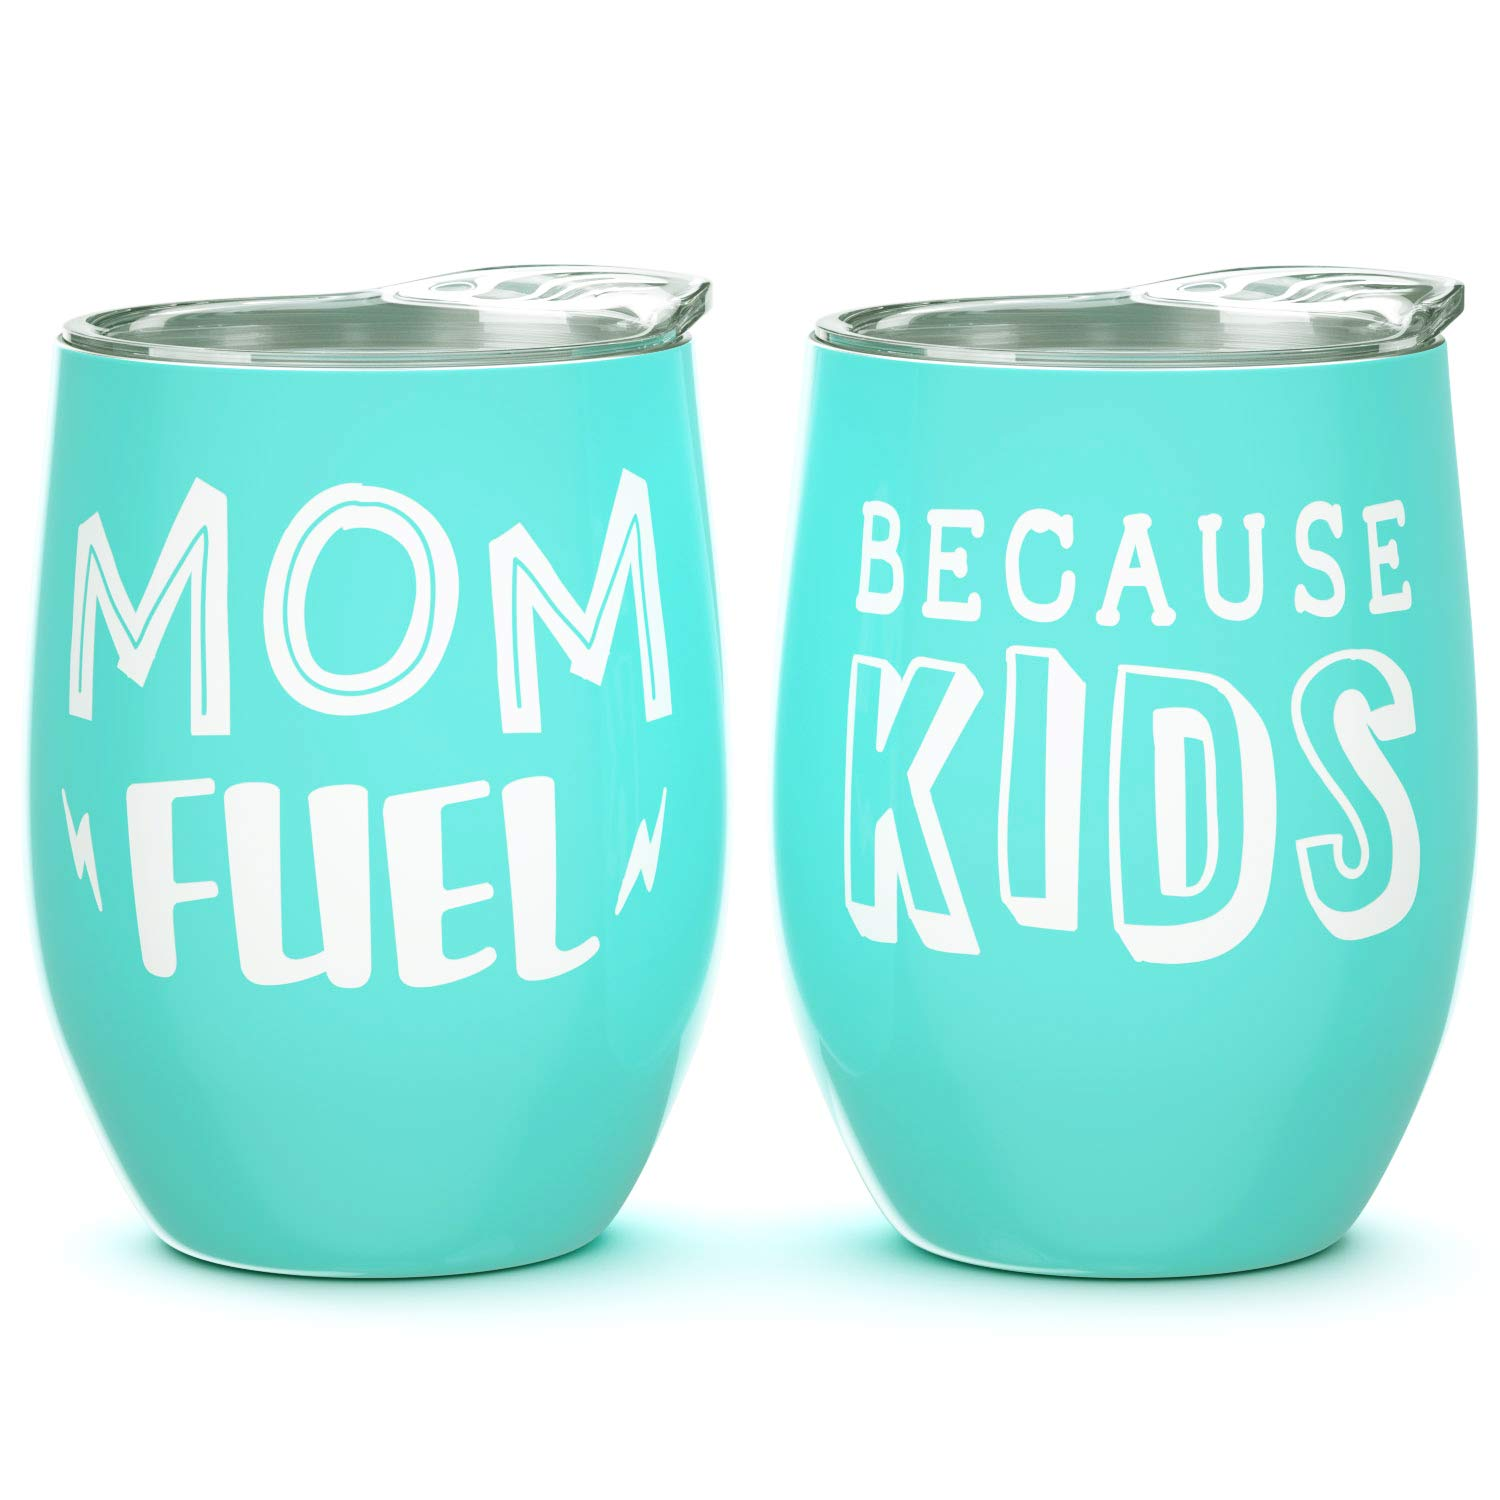 The Cutest Stainless Steel Double Insulated Vacuum Sealed Tumbler 12 Ounce Perfect For Moms Funny Birthday Wine Ideas For Women Wife Sister Best